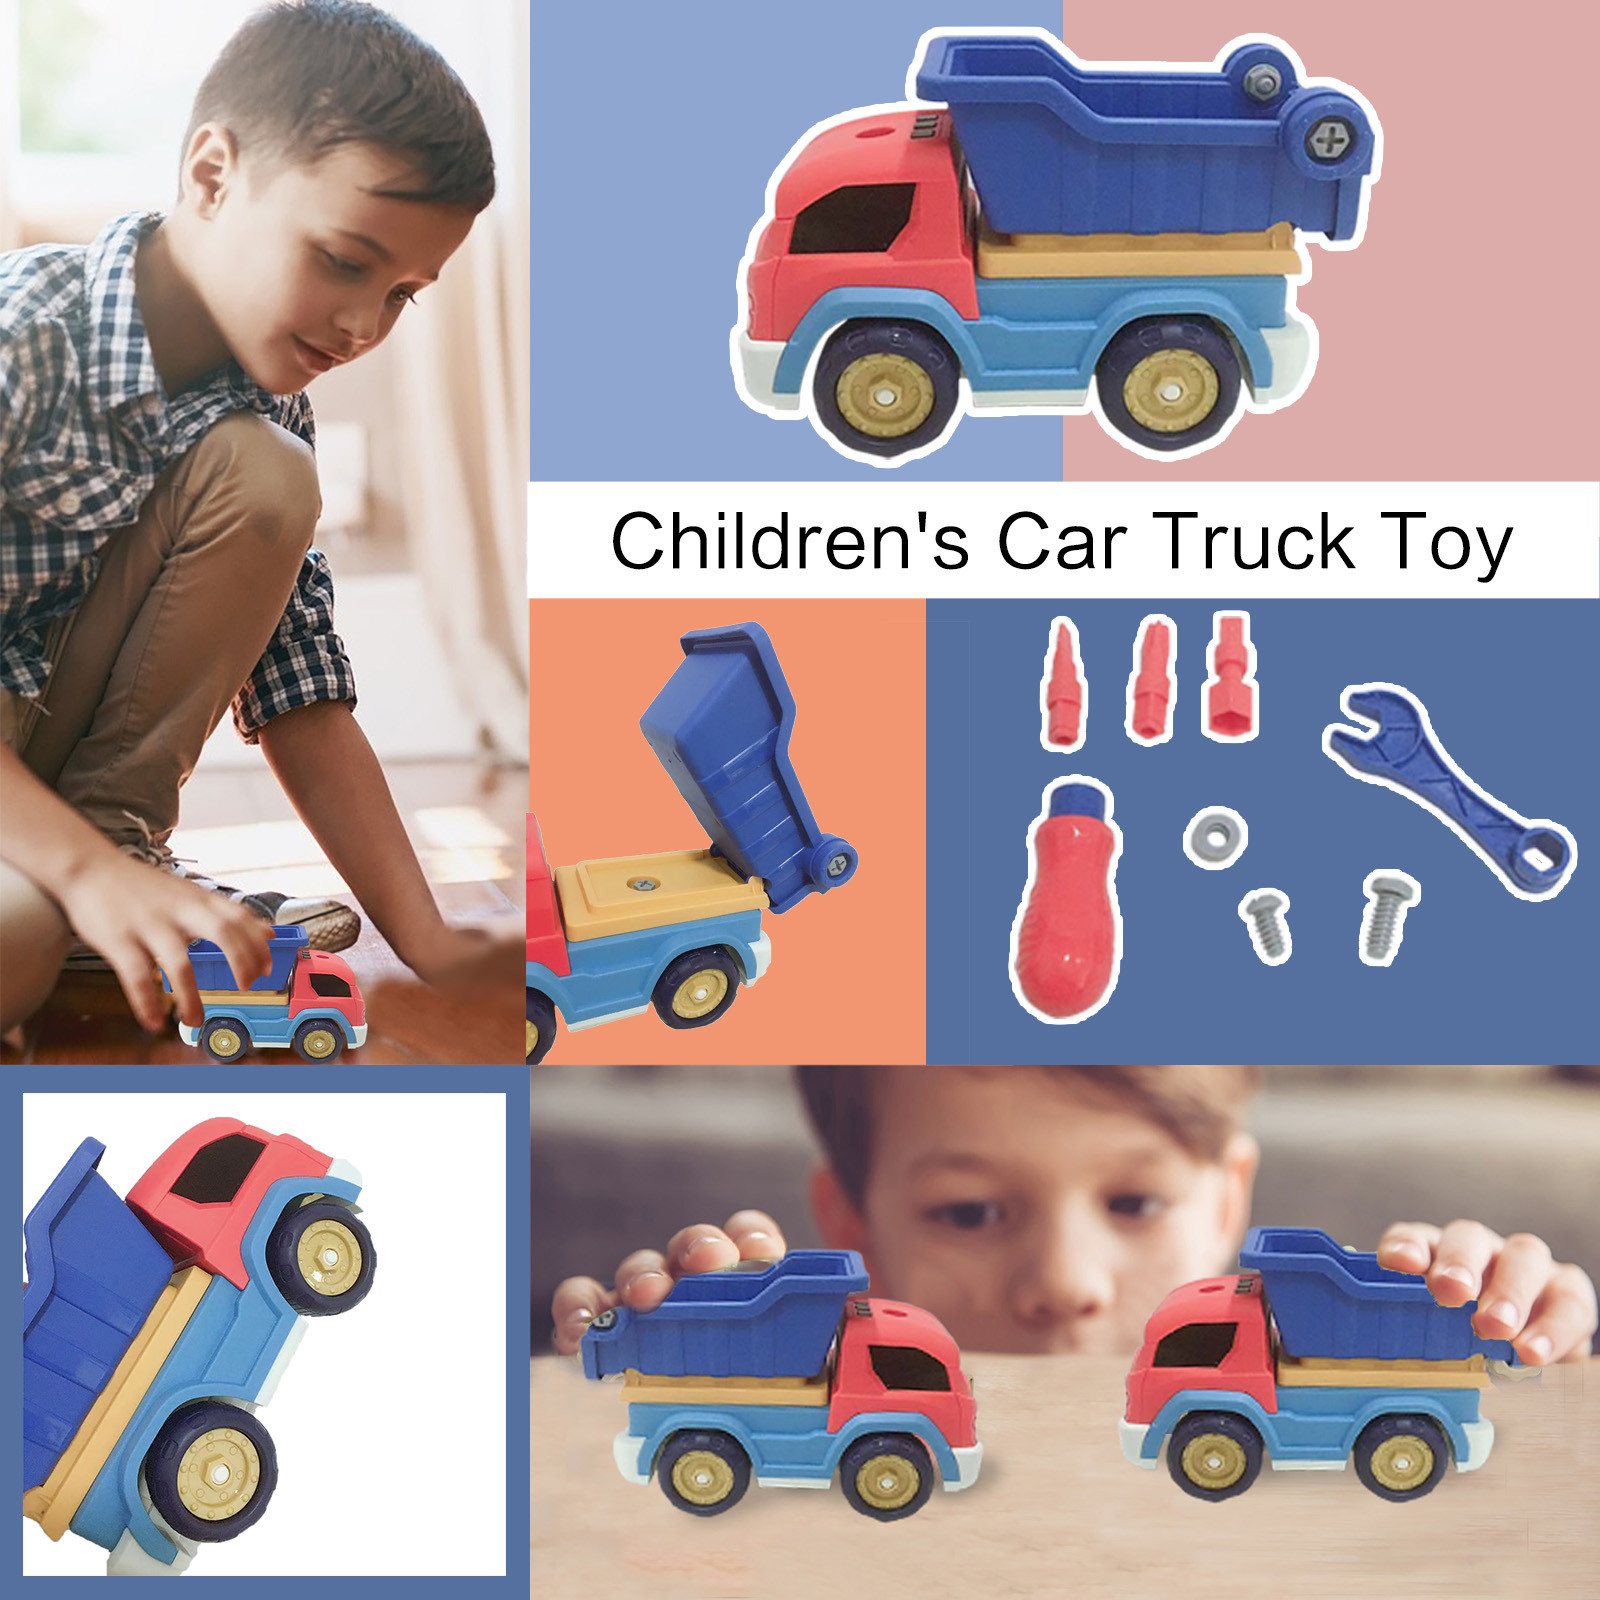 Nut Disassembly Engineering Truck Construction Engineering Stem Tools Learning Toys Screw Building Play Kids Children Car Model